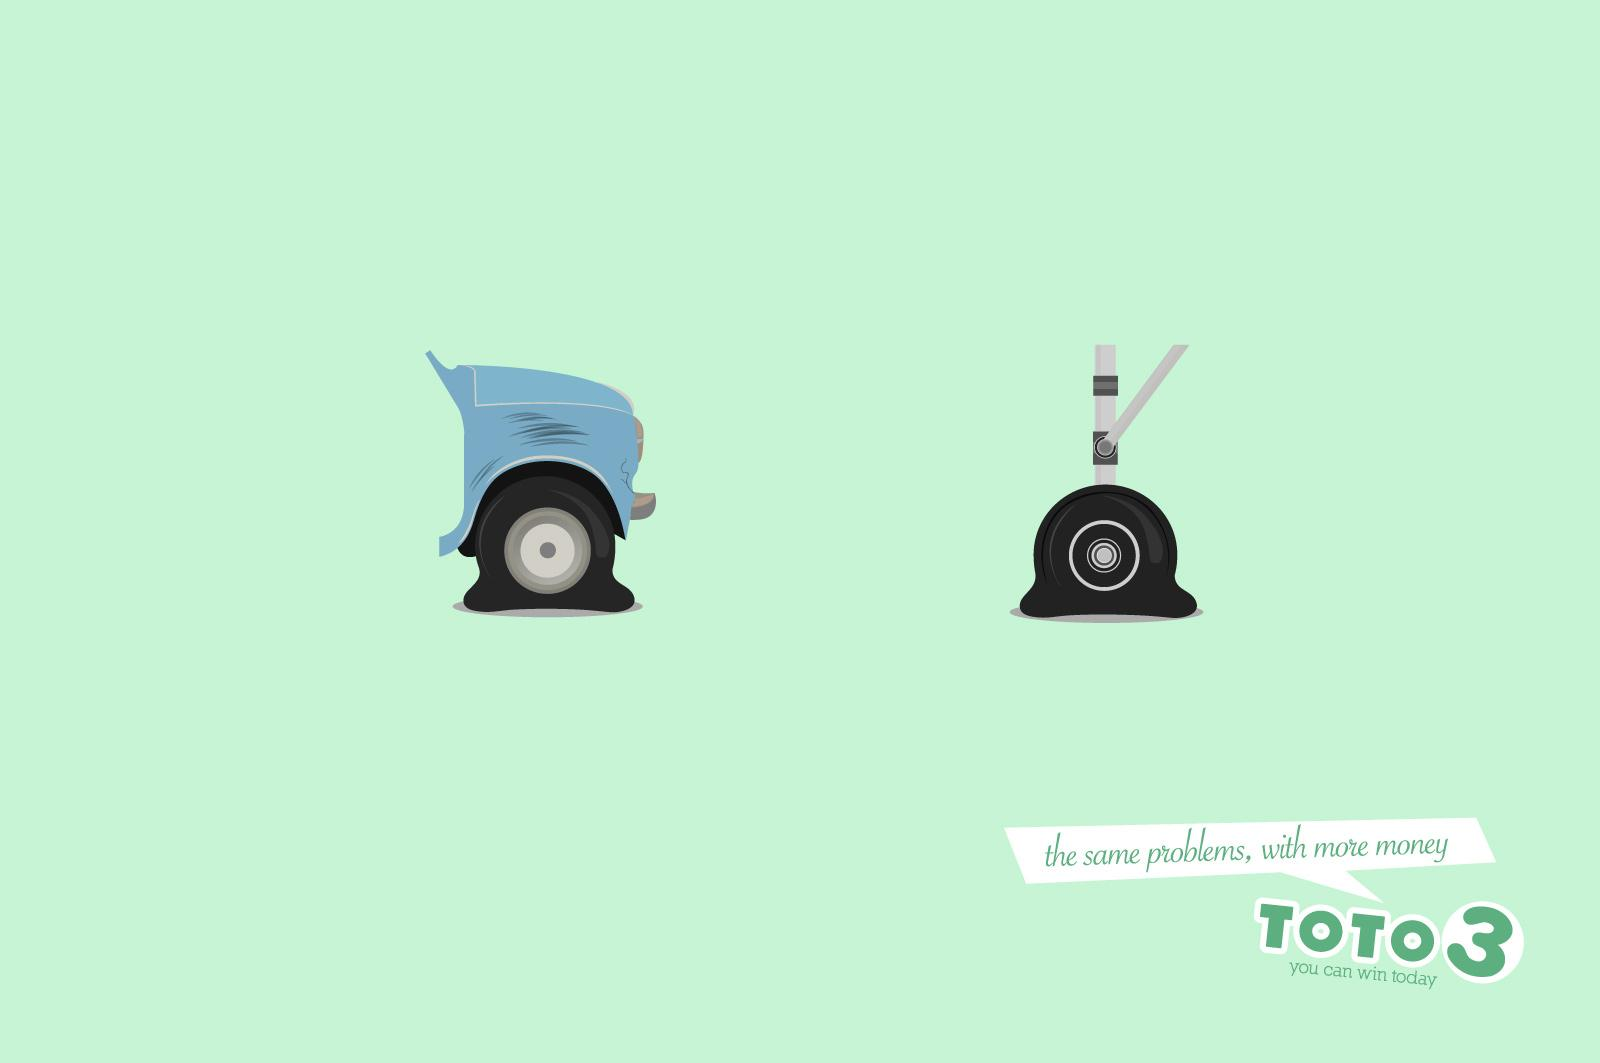 Toto 3 Print Advert By Grey: Wheels | Ads of the World™